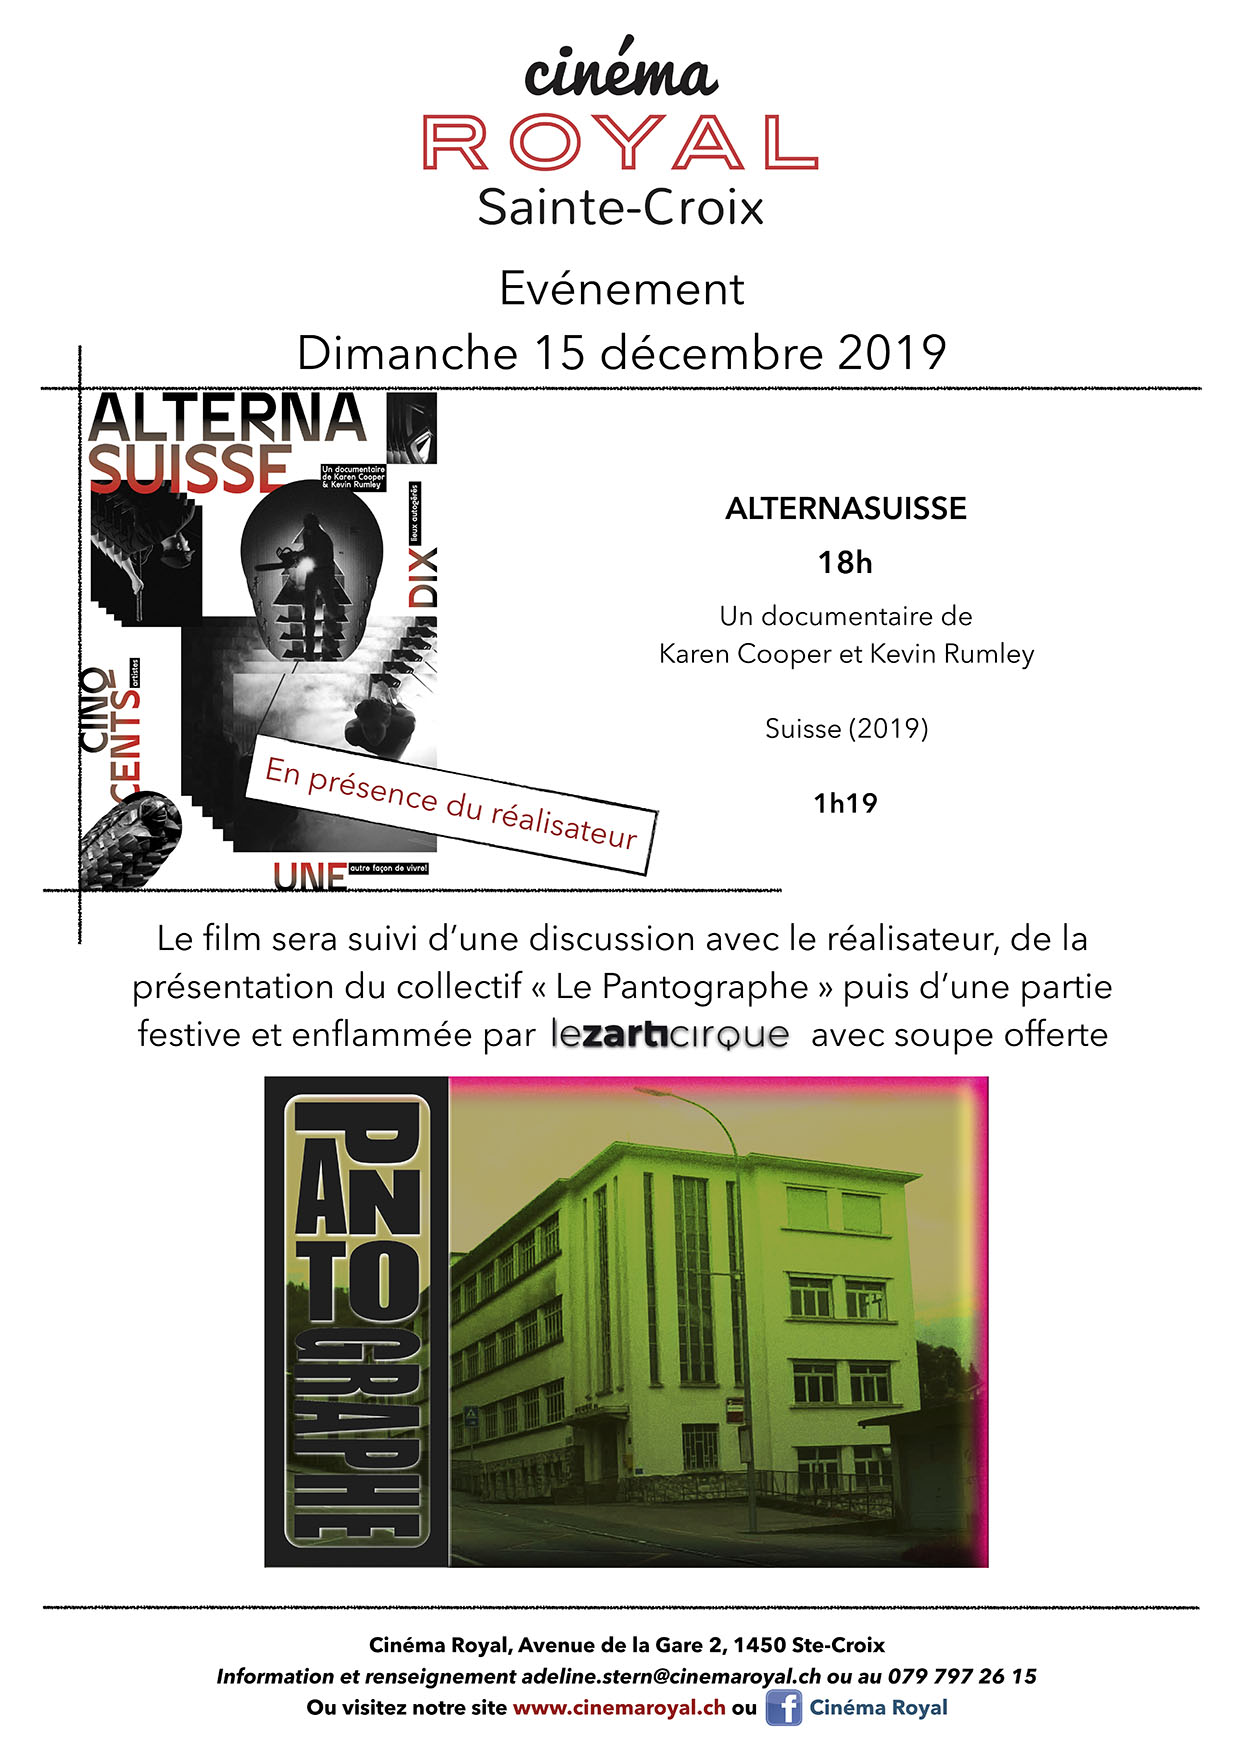 Event Alternasuisse